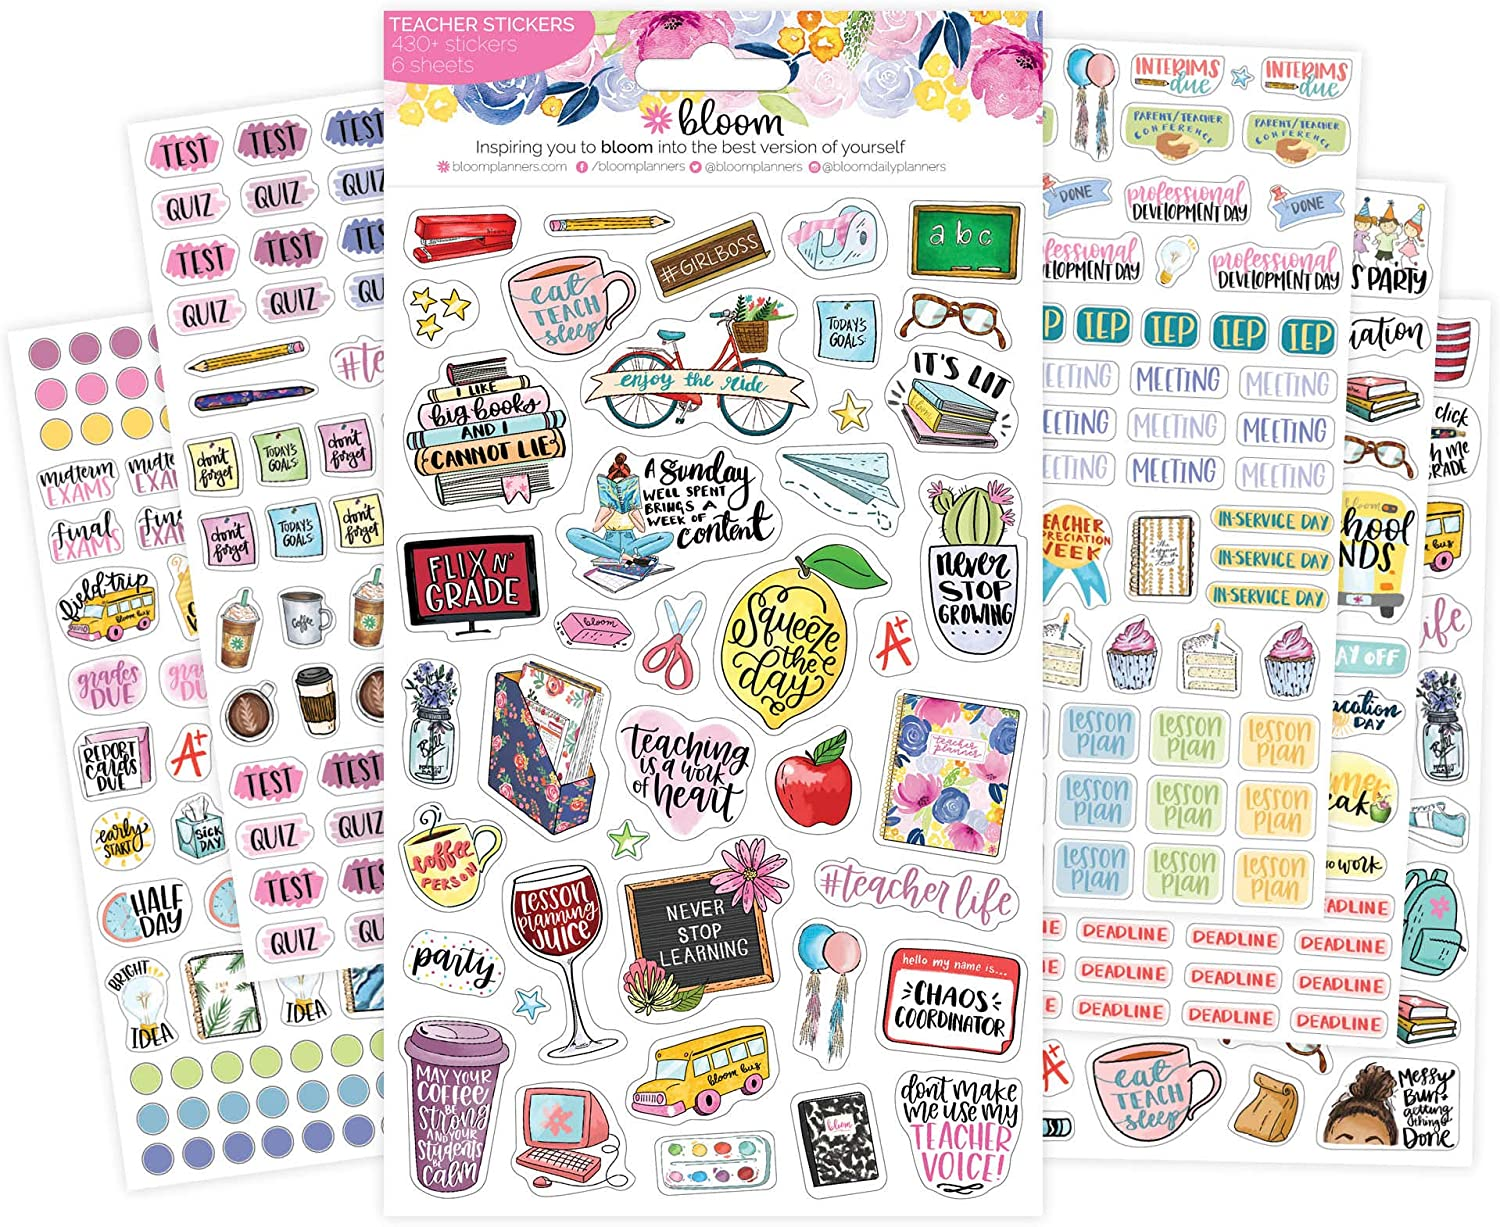 bloom daily planners New Teacher Planner Sticker Pack - School Themed Planning Sticker Sheets - 430 Stickers per Pack!